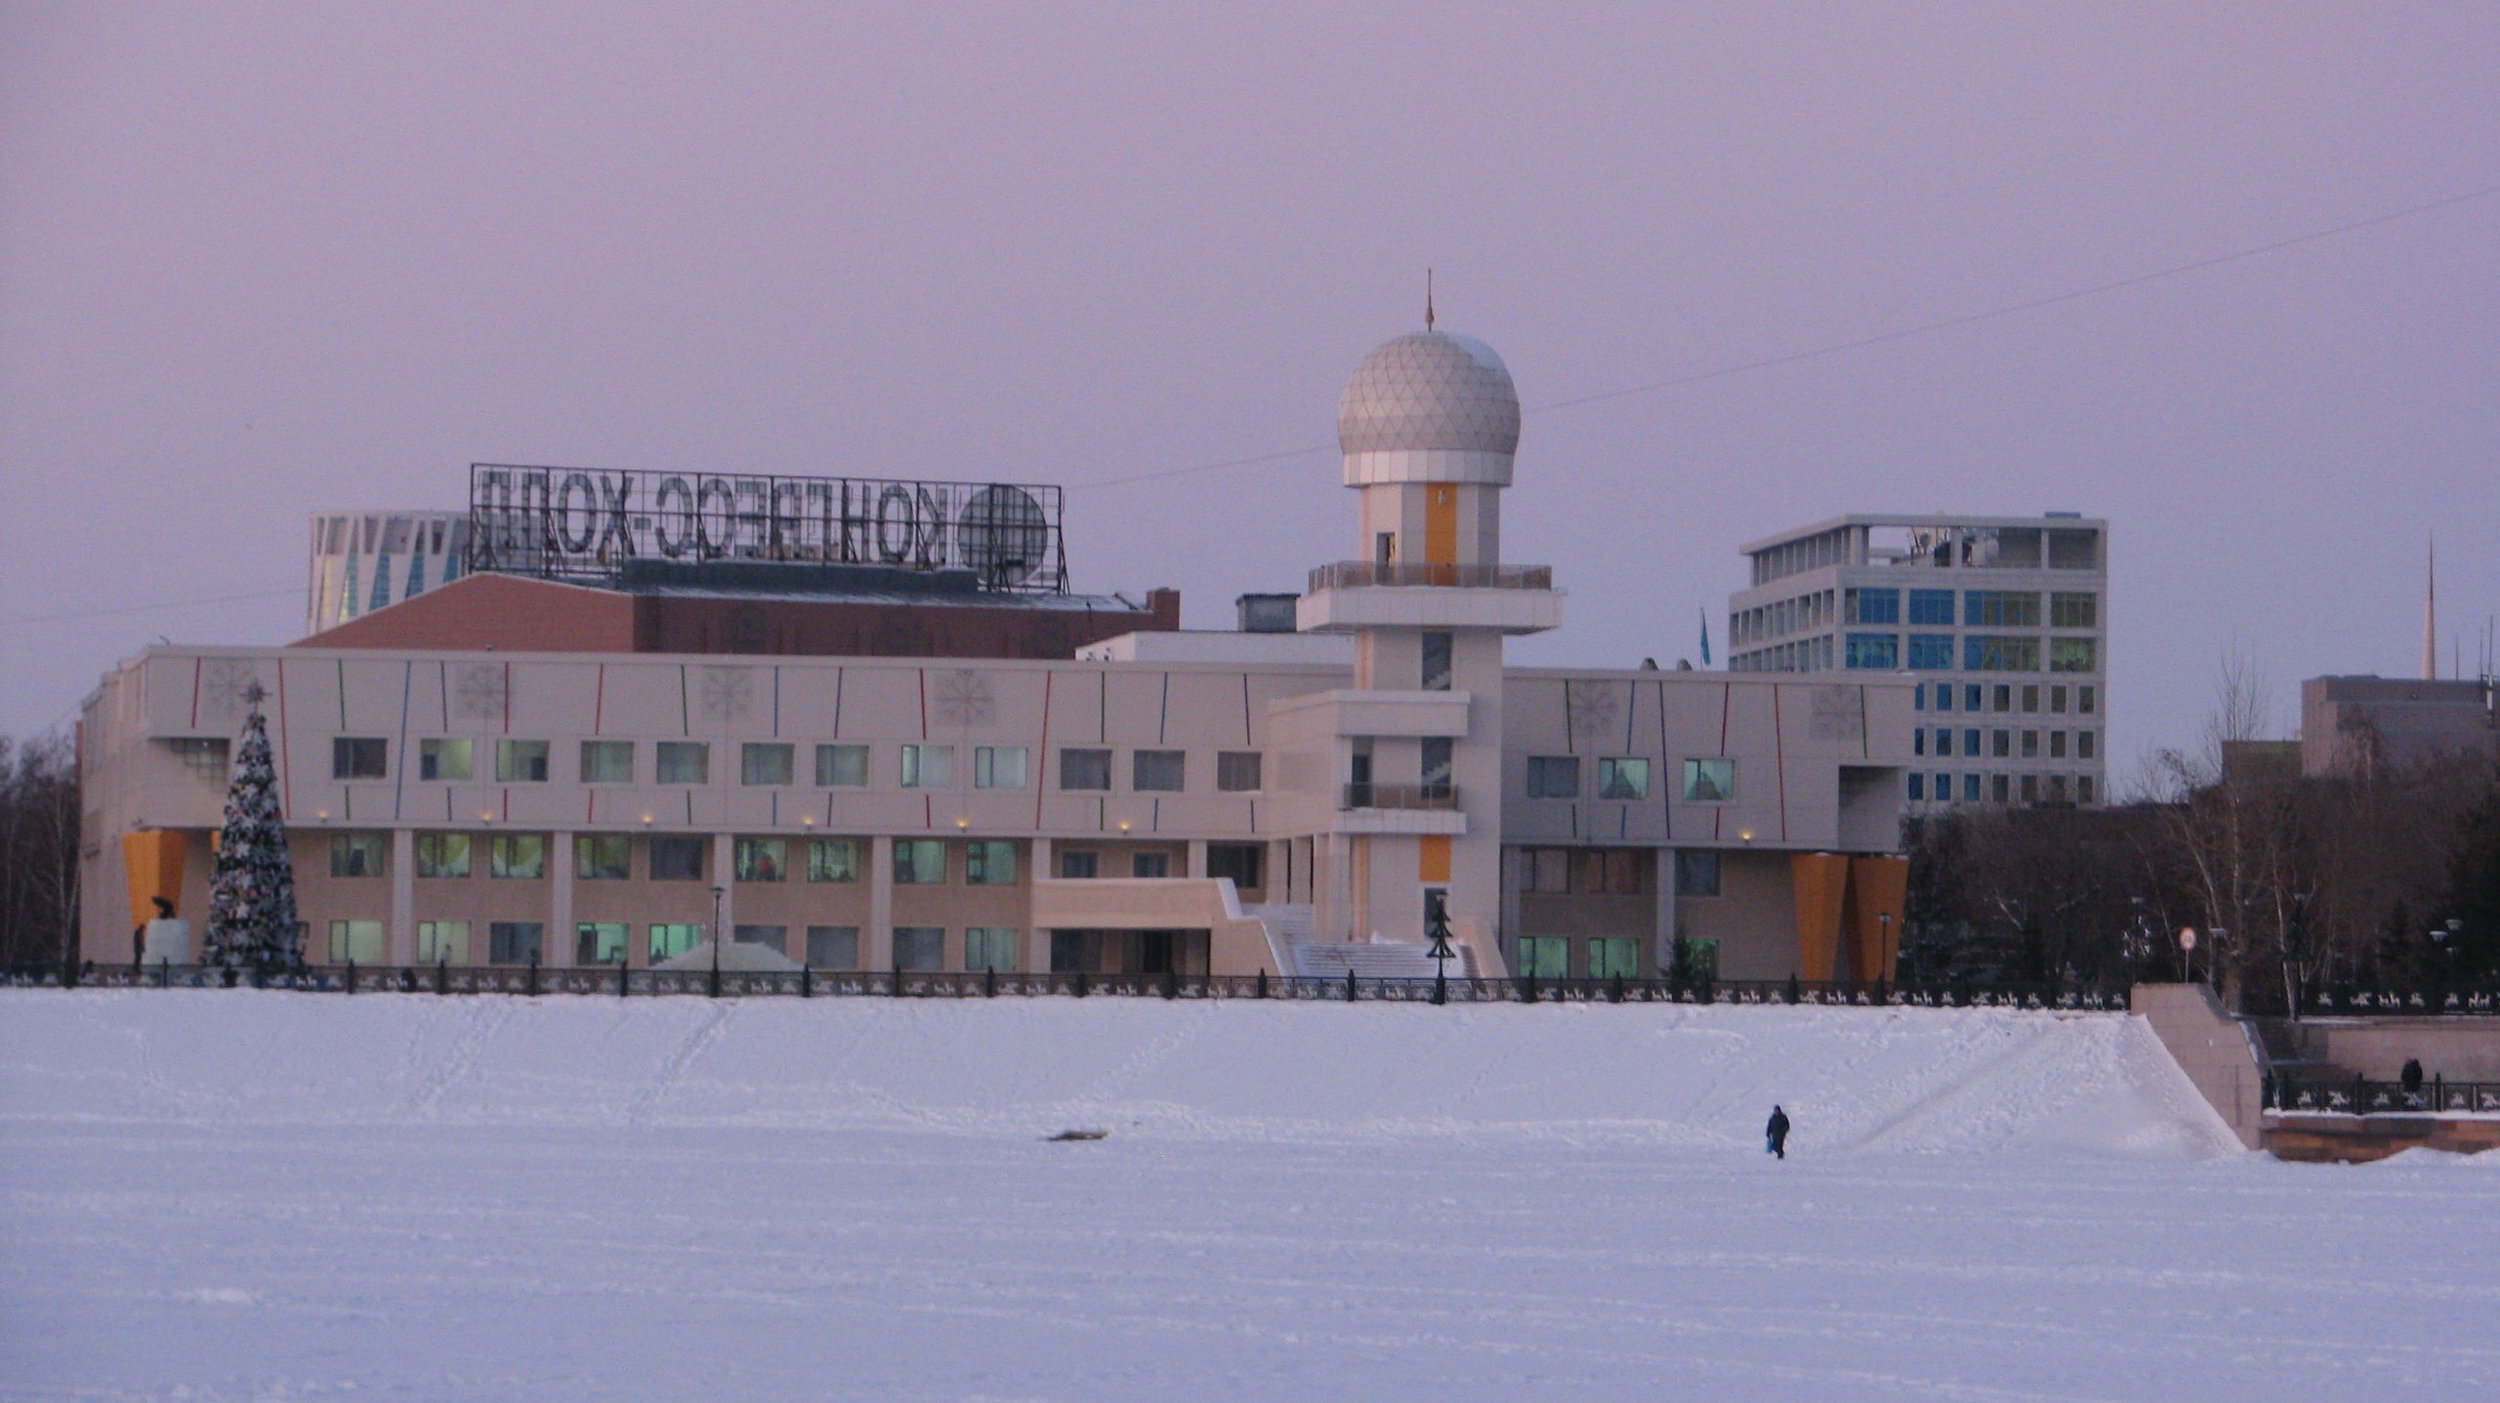 The Silent Steppe Cantata was performed here at Congress Hall on December 11, 2011 in Astana, the capital of Kazakhstan. Photo credit: Anne LeBaron